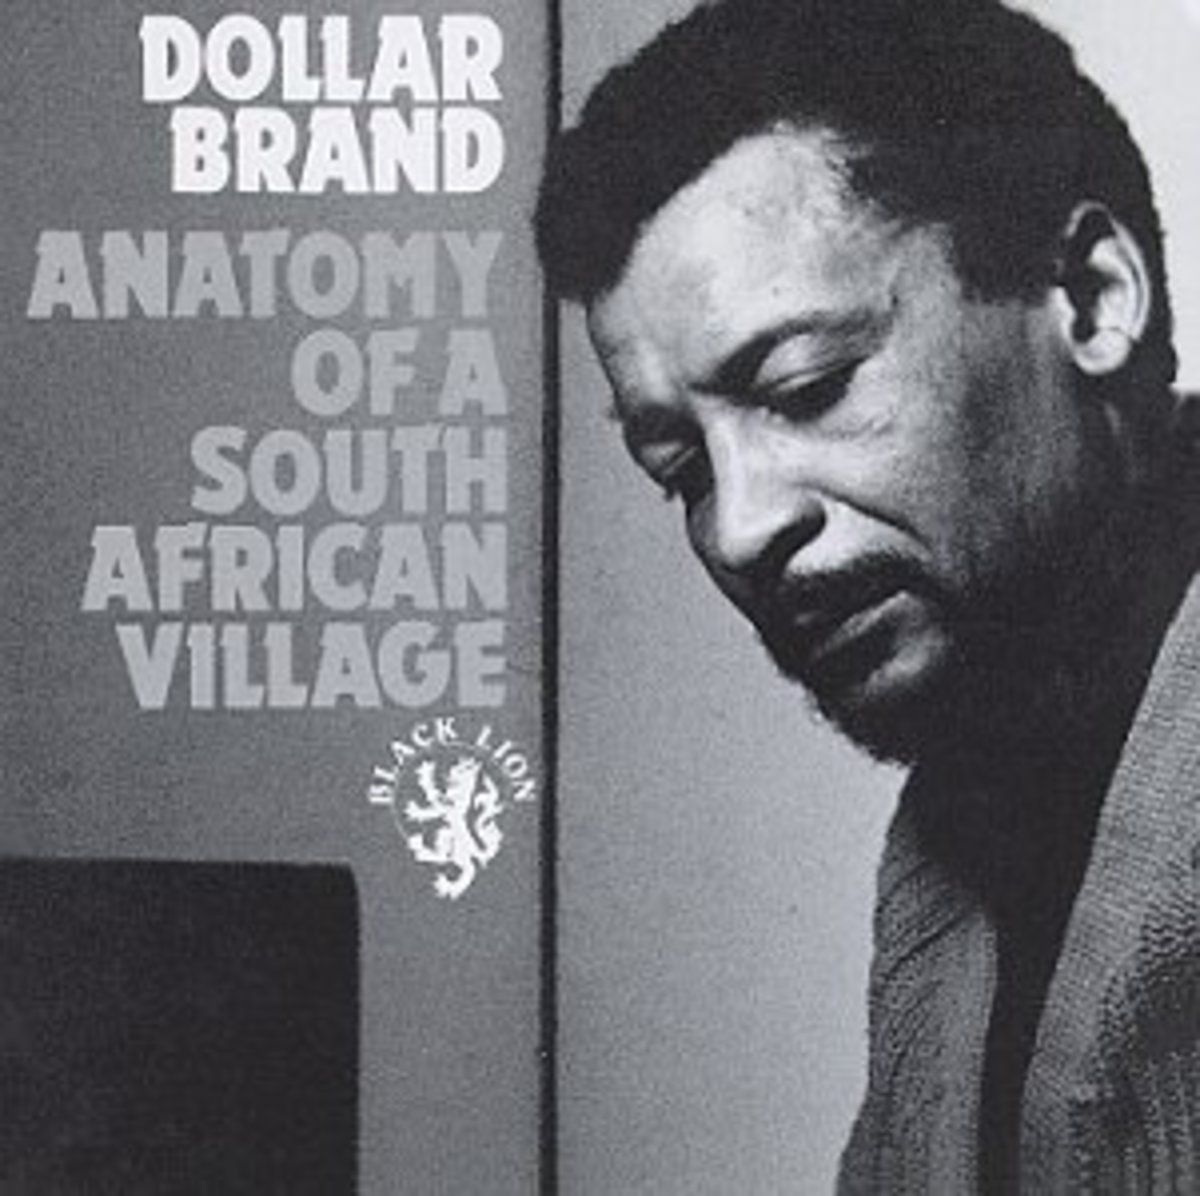 Abdulah Ibrahim, a South African Jazz pianist